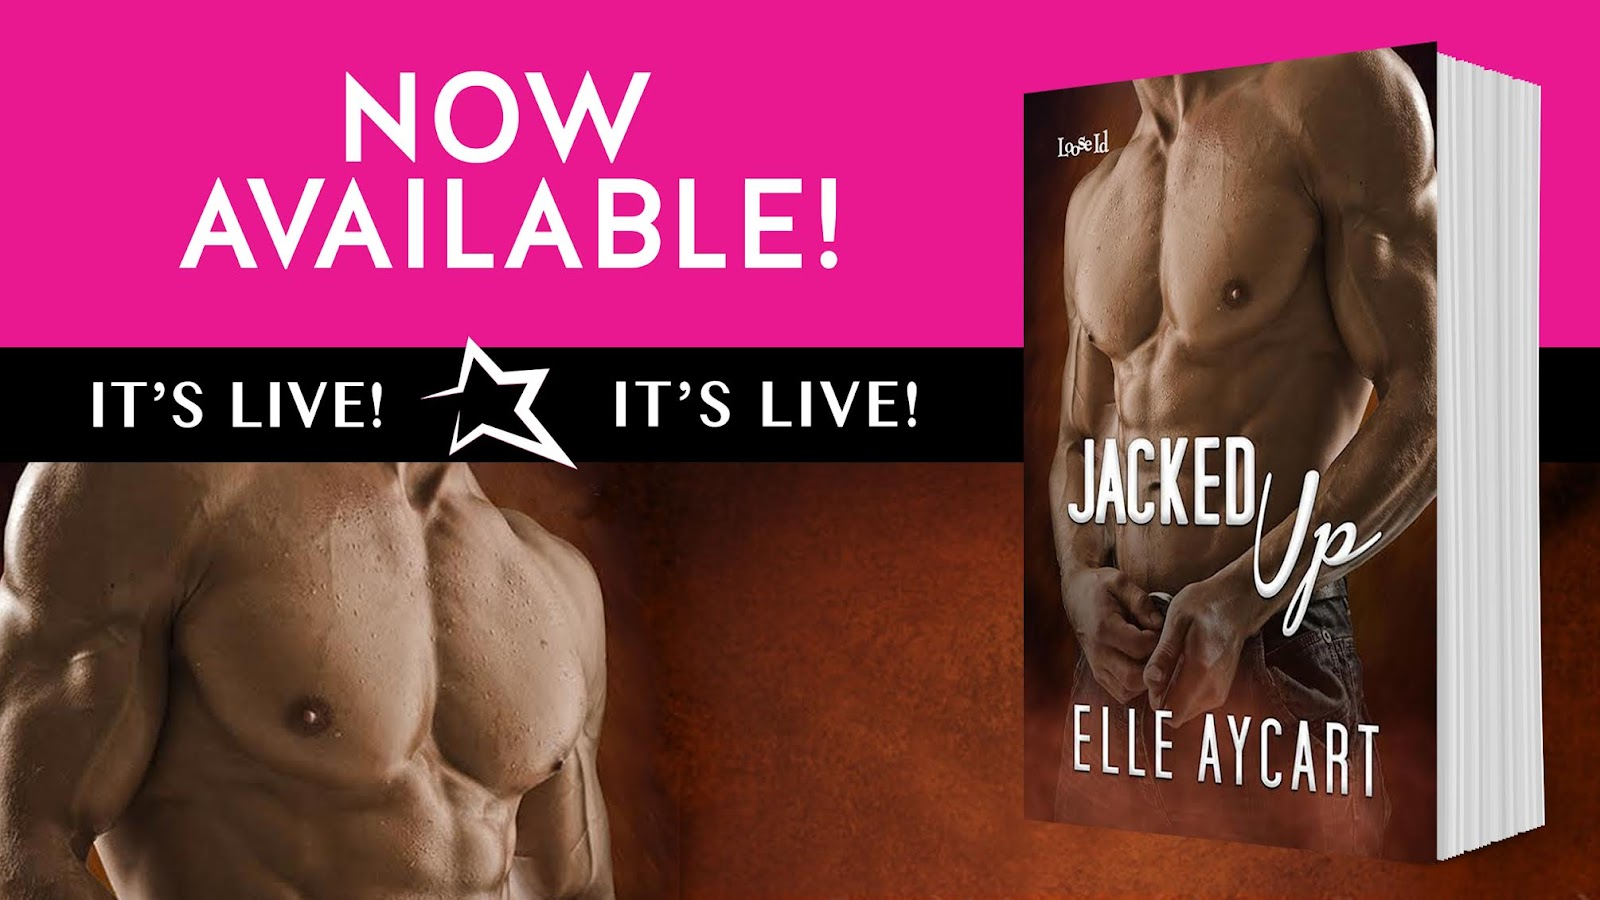 jacked up now available.jpg